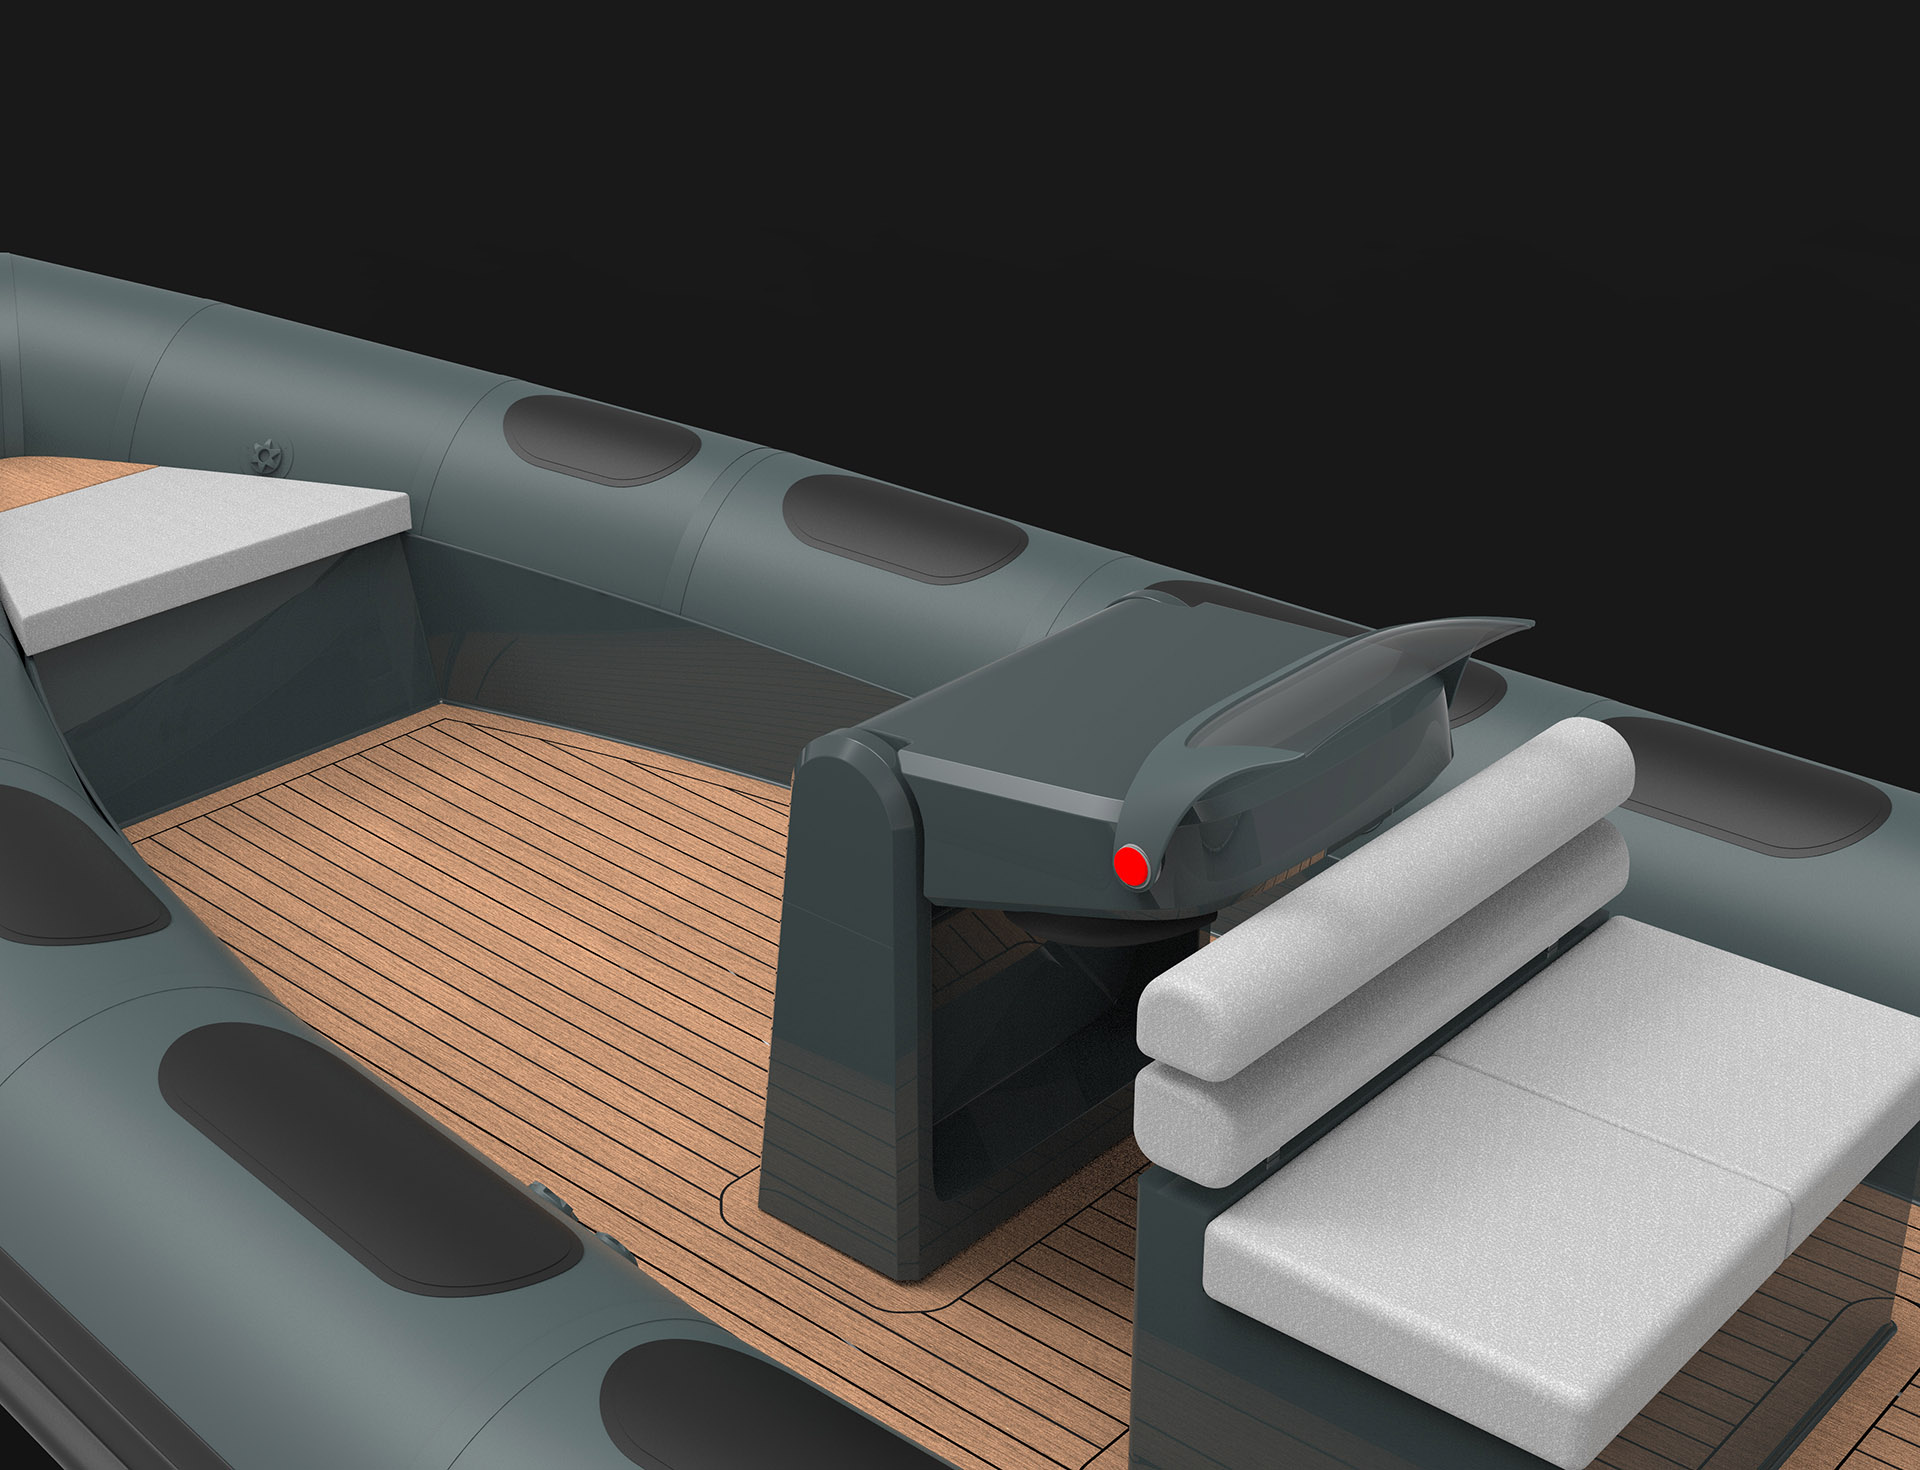 Foldable Console Crew Tender